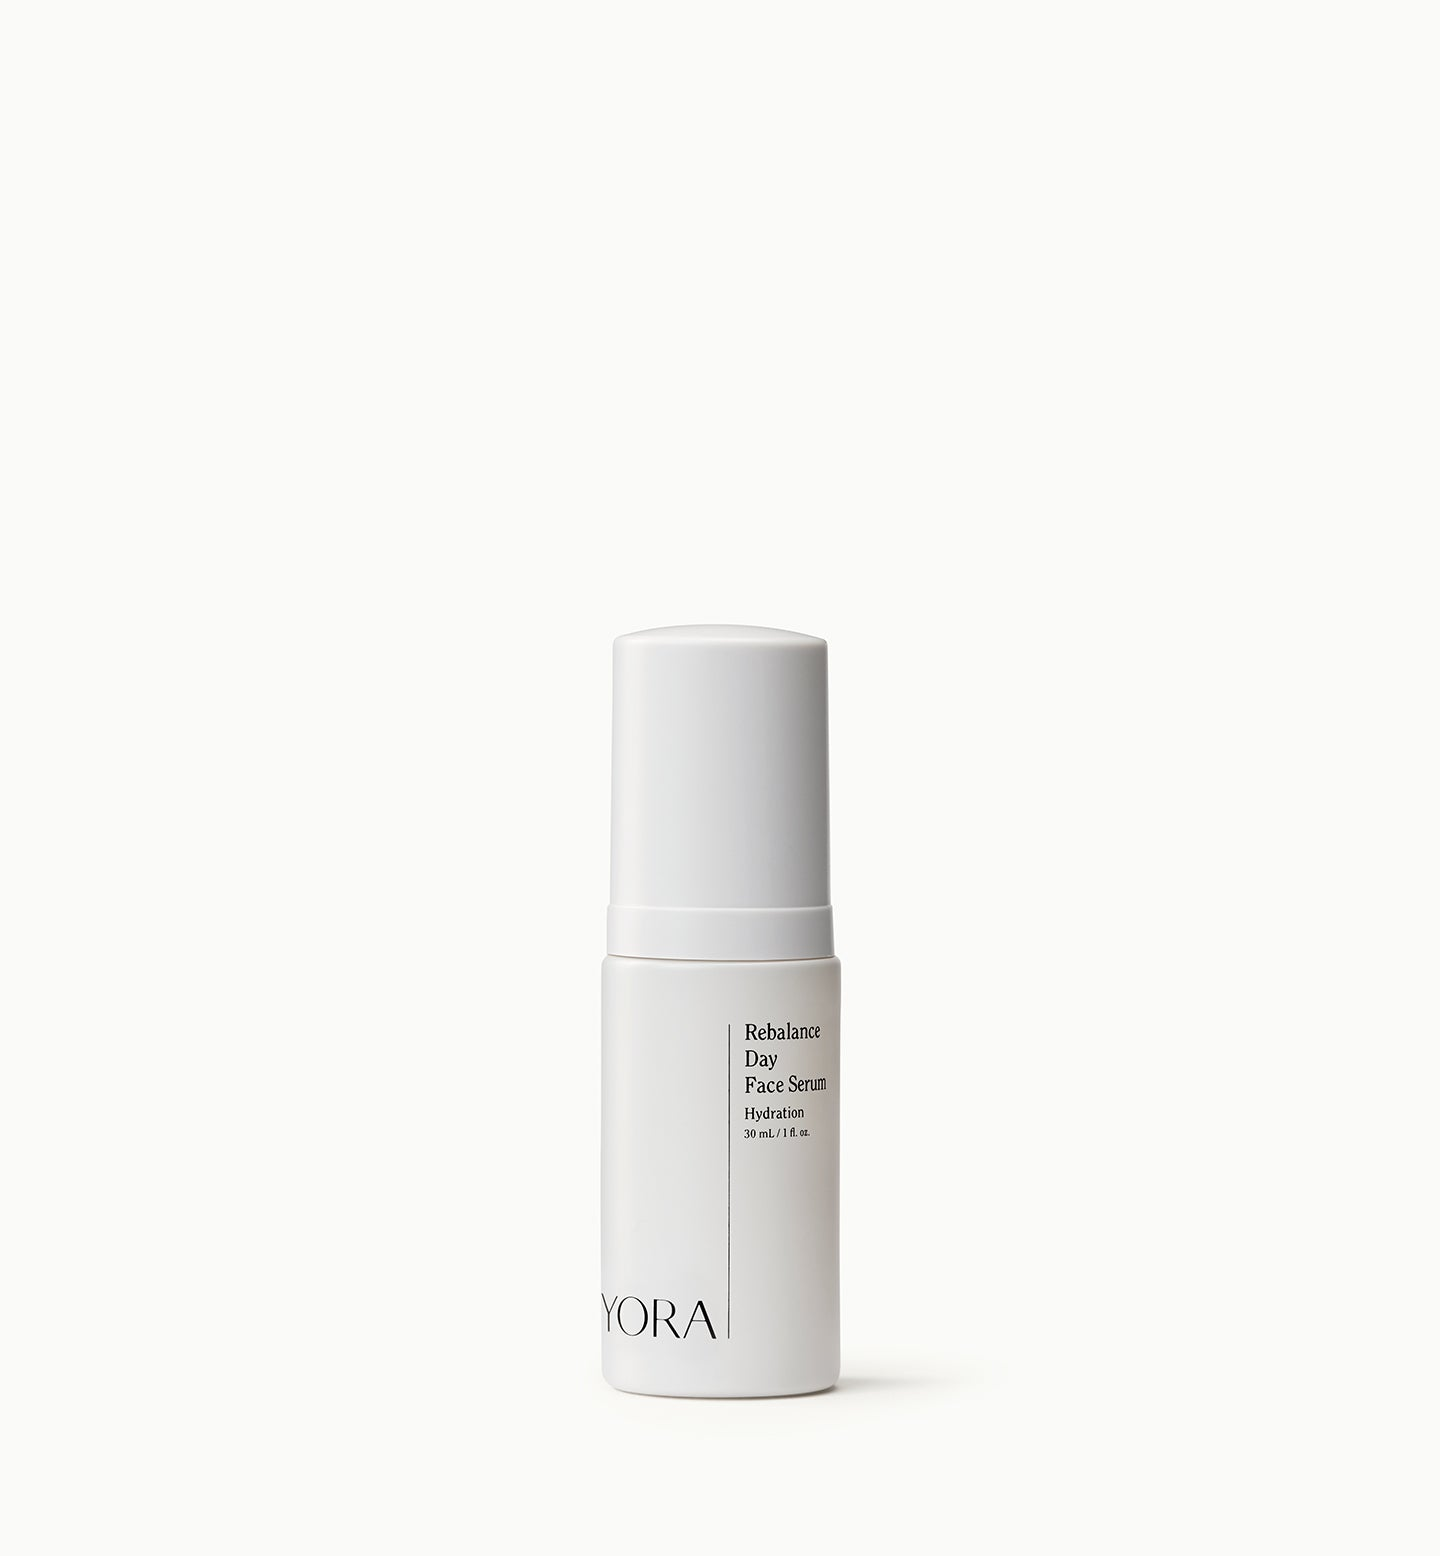 Rebalance Day Face Serum